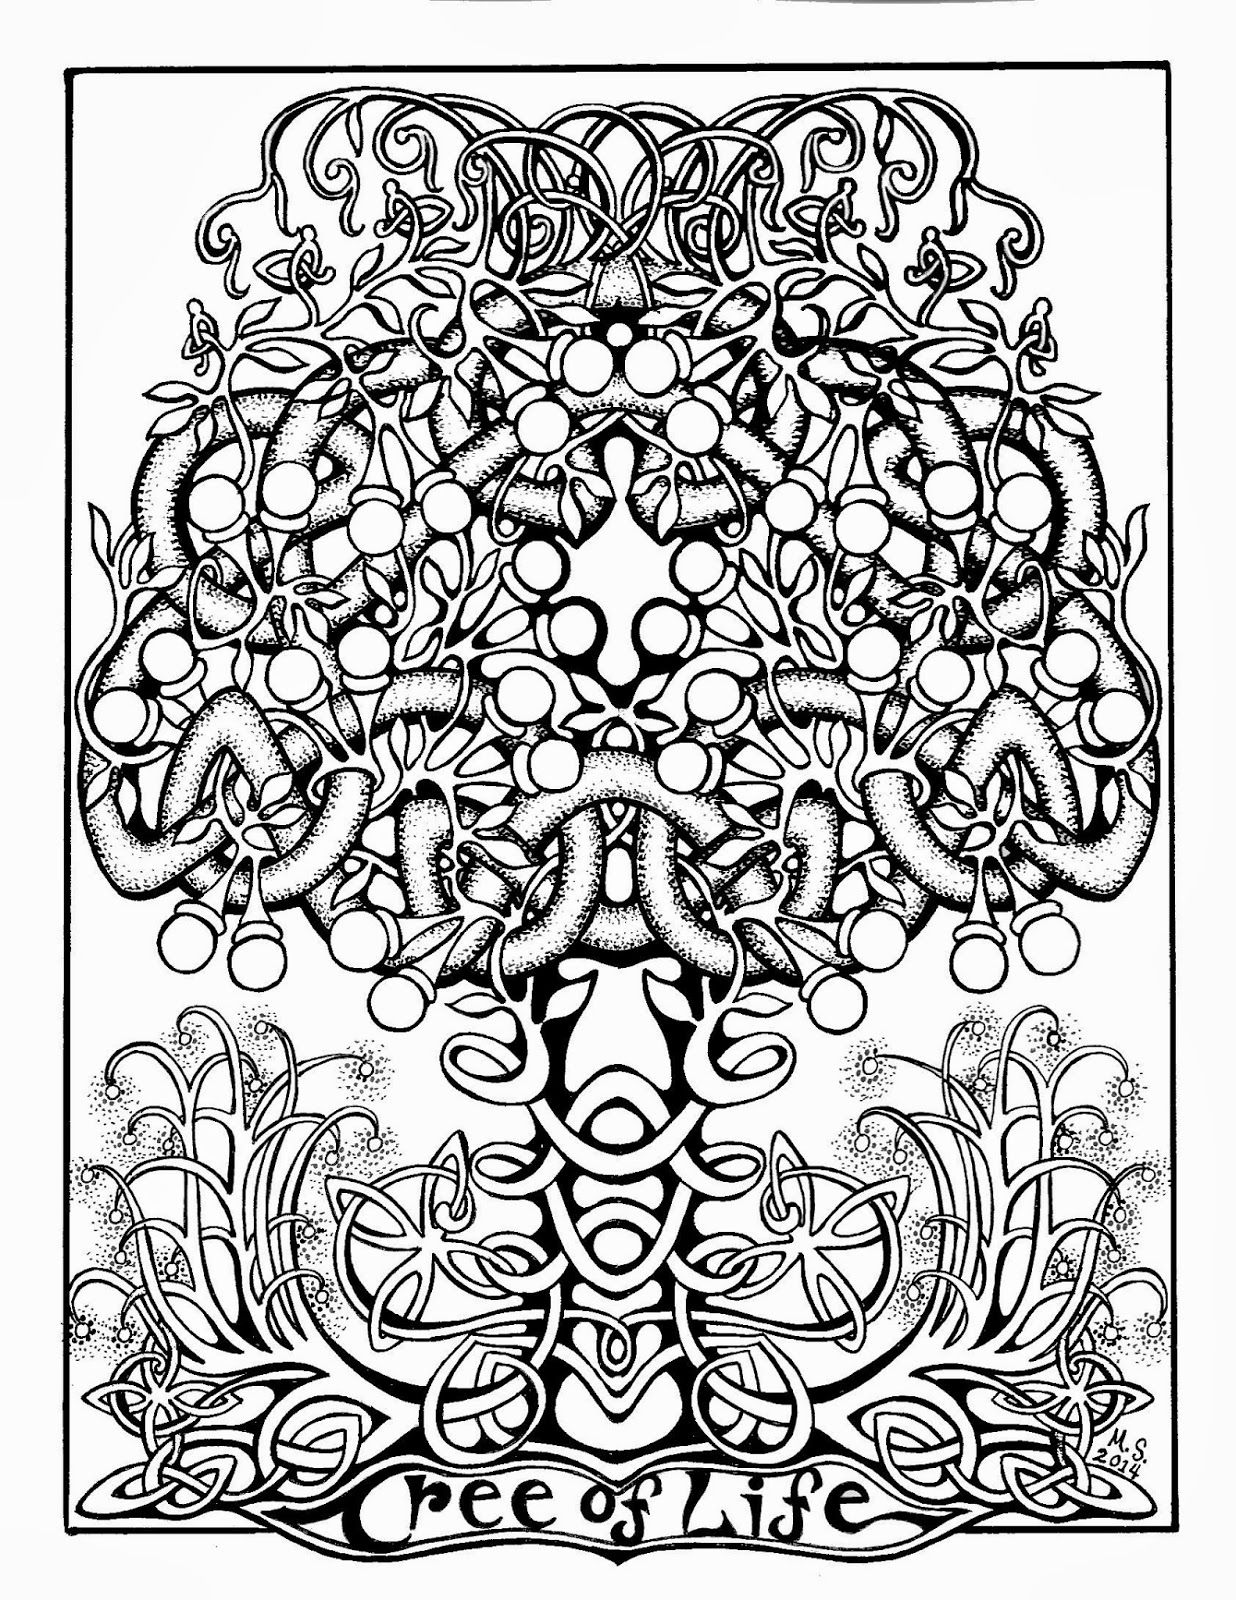 Lotus designs coloring book - Paste And Color The Tree Of Life Coloring Page Some Celtic Fun Tree Of Lifebw